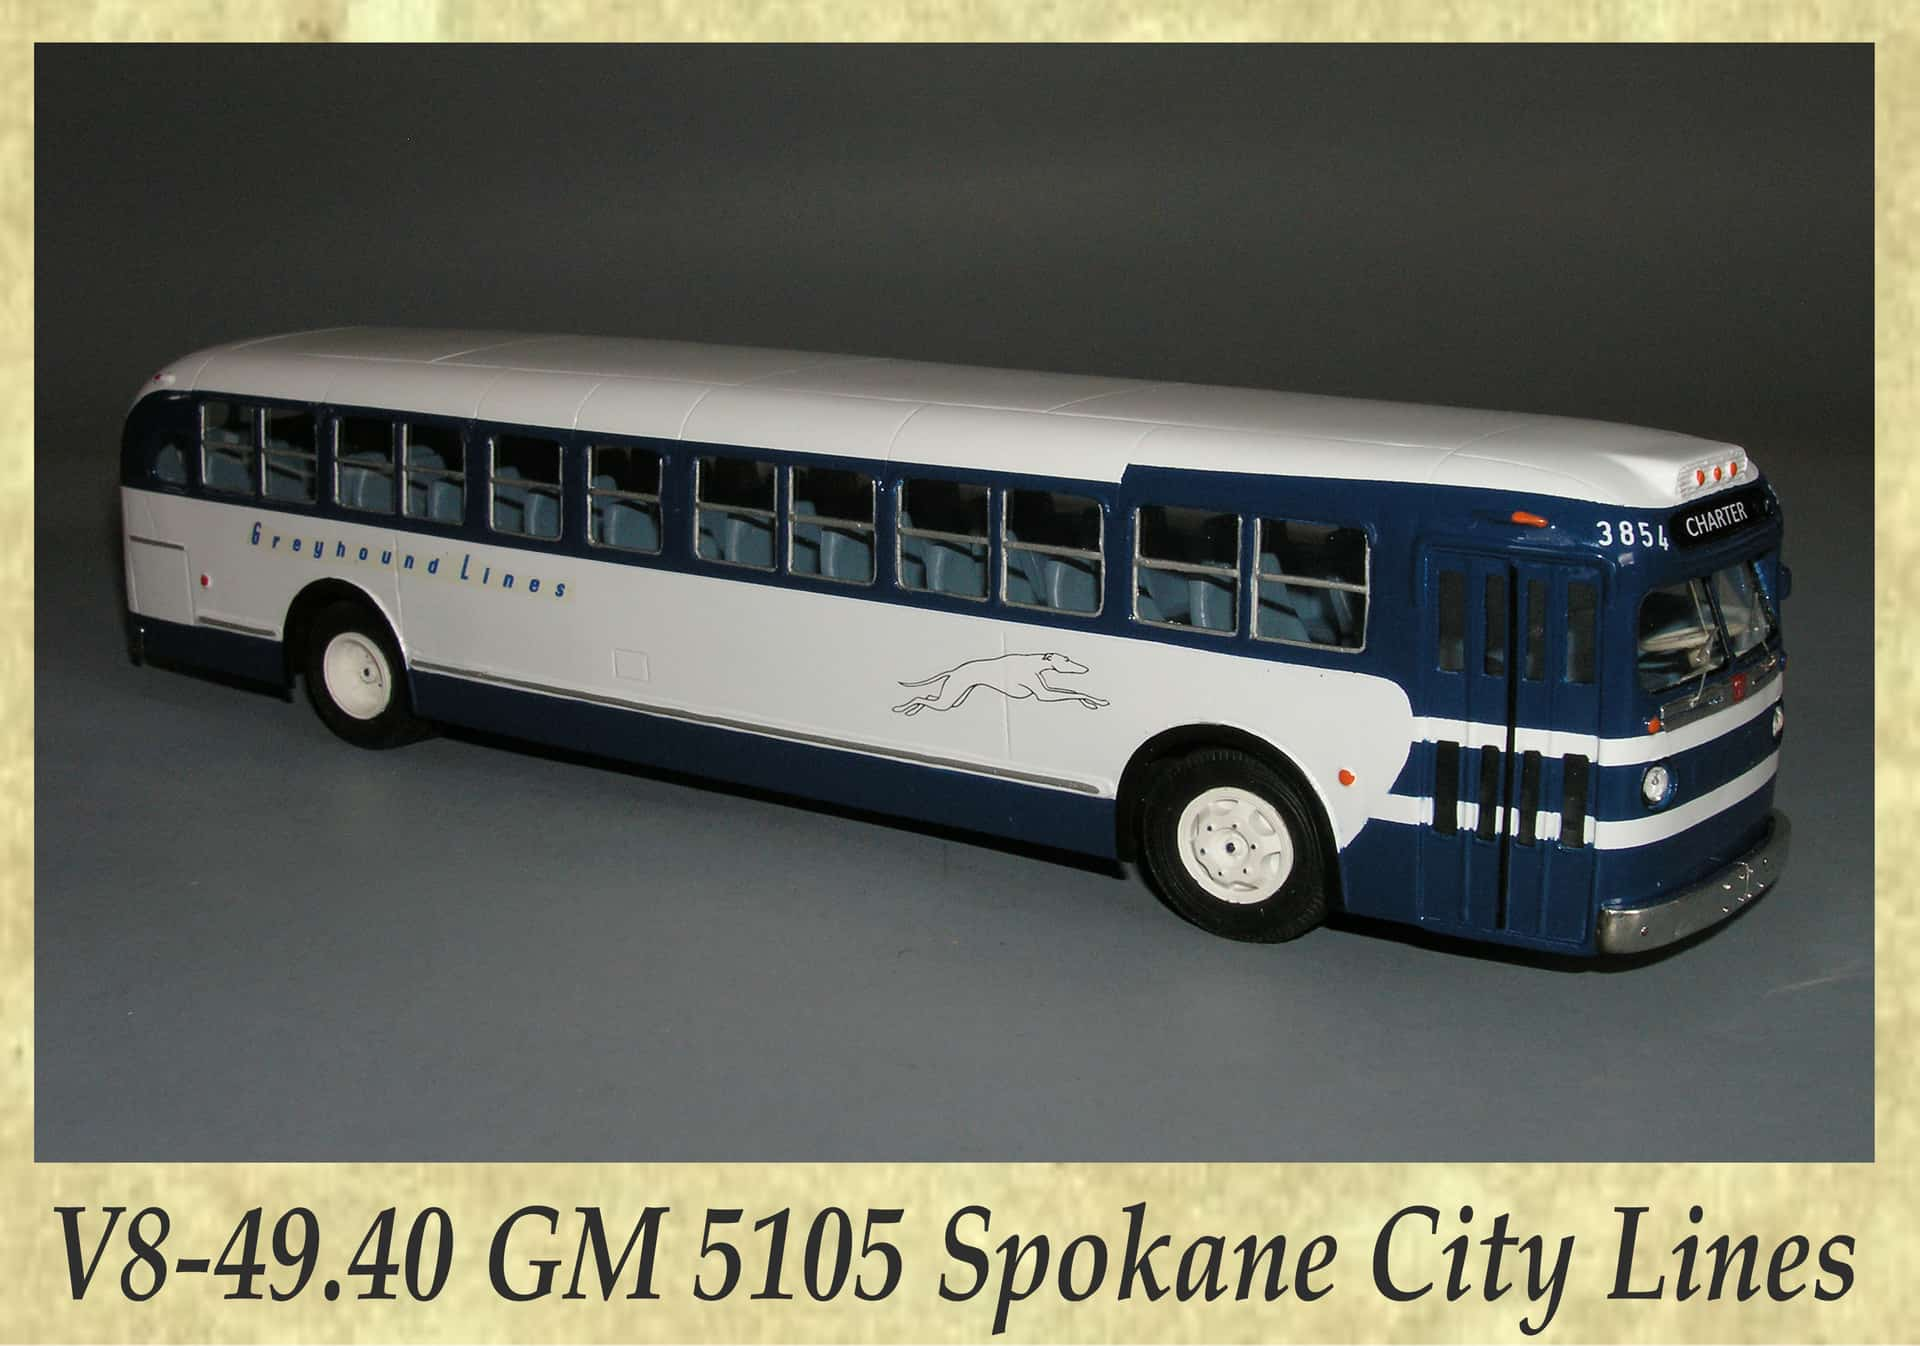 V8-49.40 GM 5105 Spokane City Lines